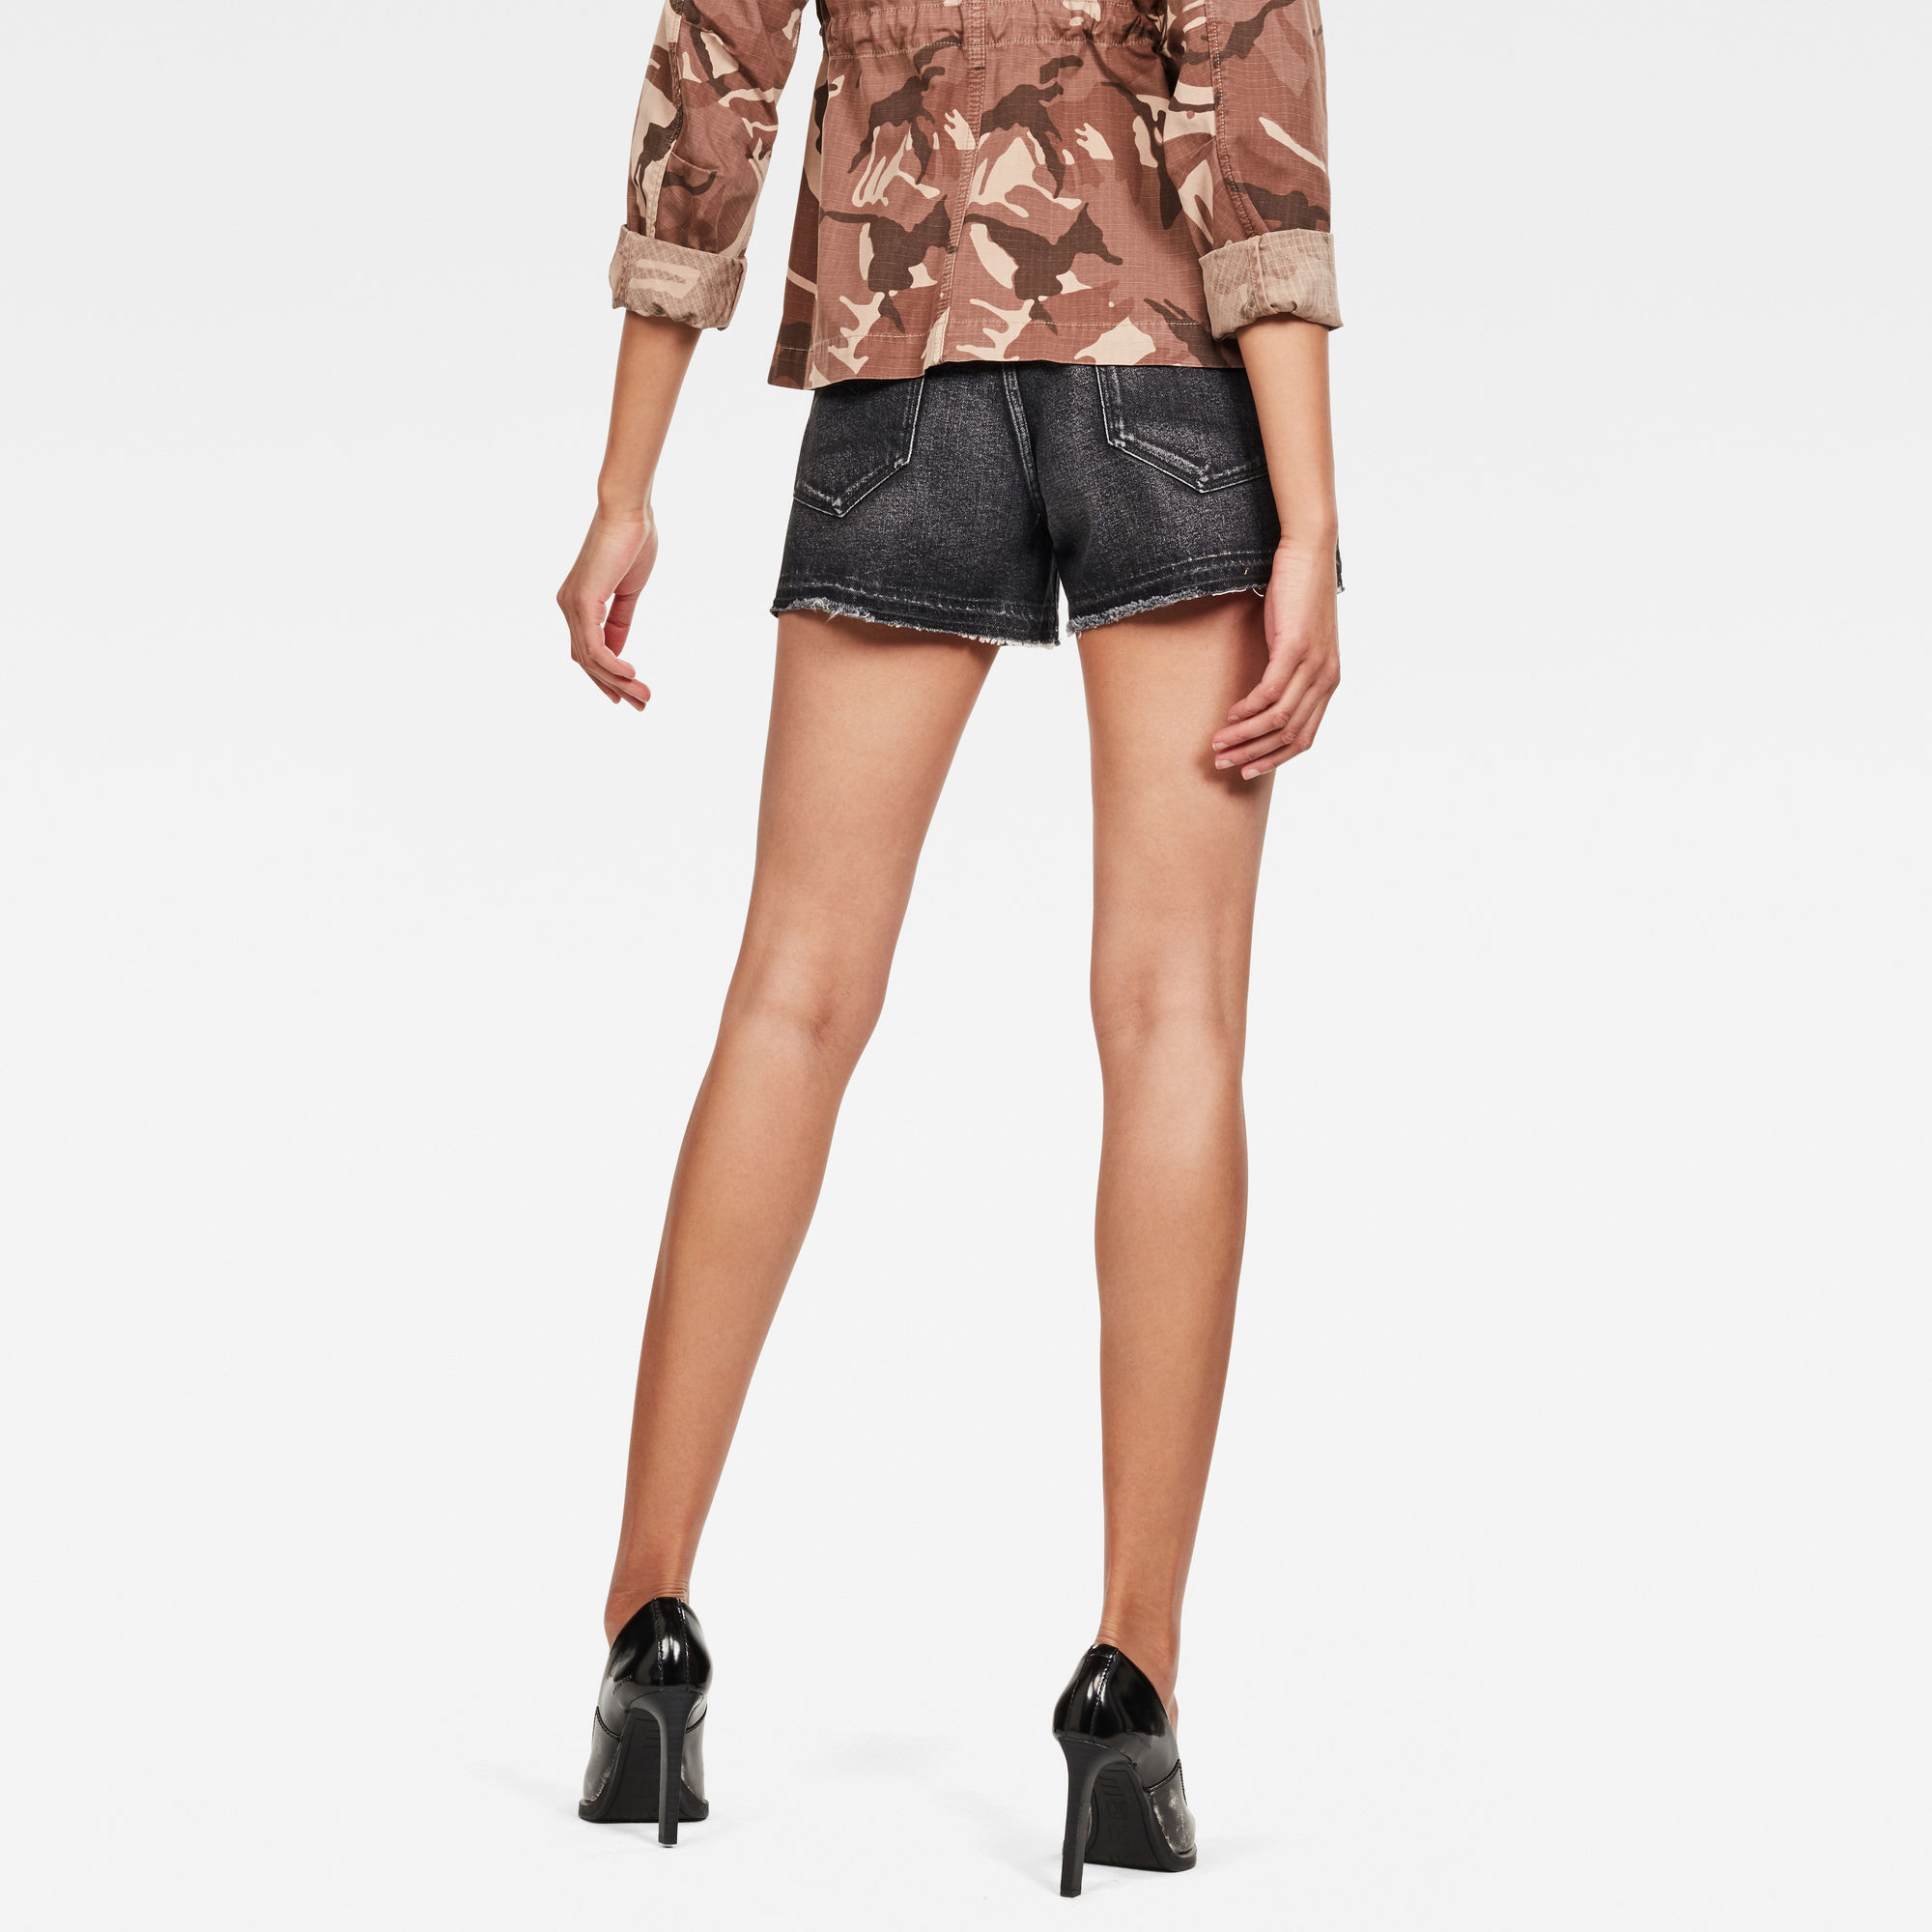 G STAR Bronson High Loose Pleat Berumuda Chino Shorts for Women Black